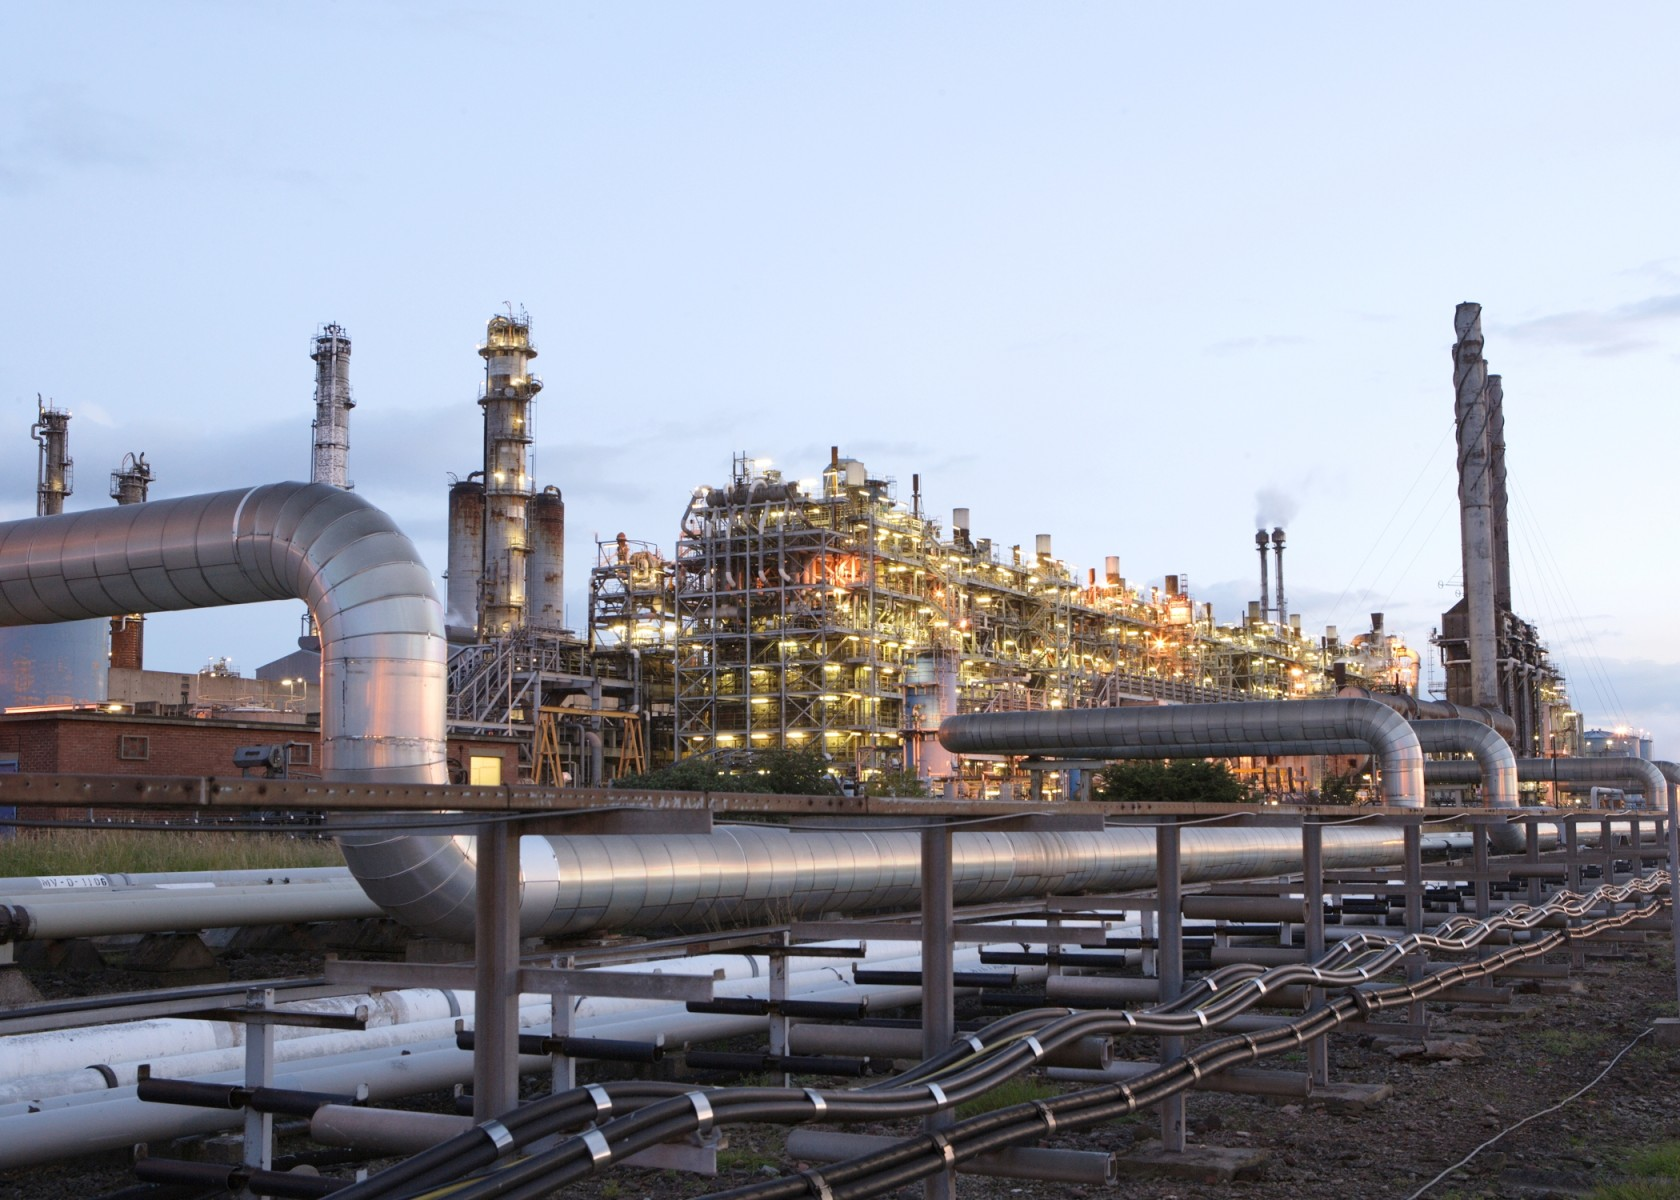 Wood secures industrial services contract with SABIC   Wood